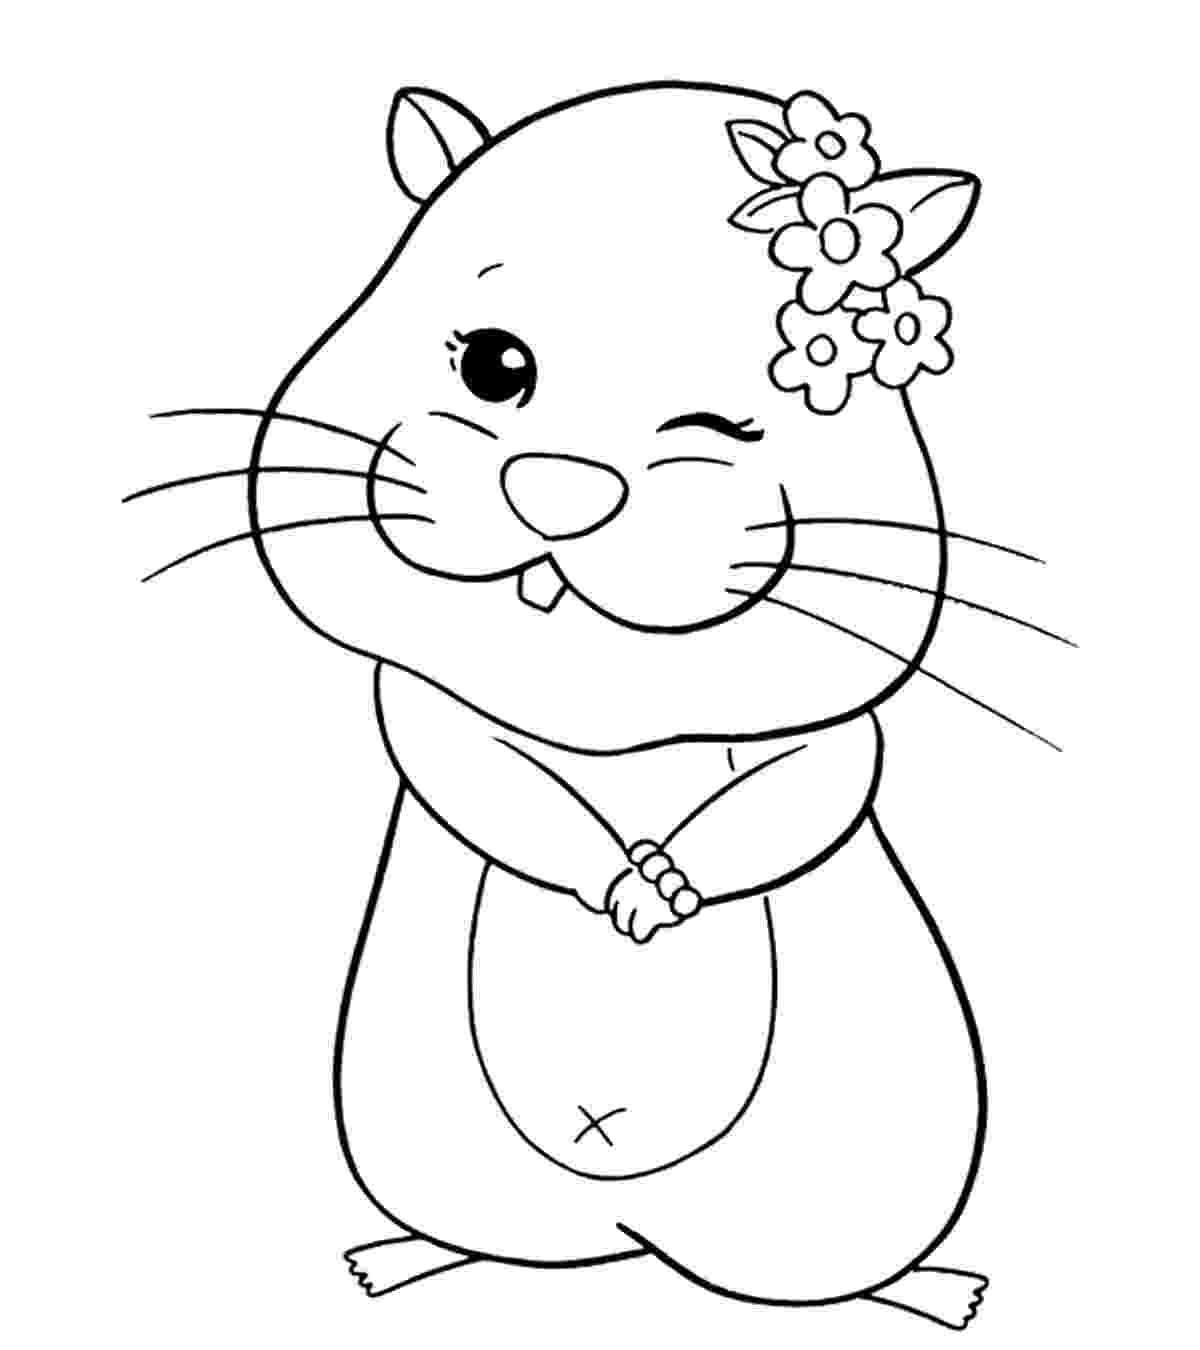 hamster coloring page hamster coloring pages hellokidscom coloring hamster page